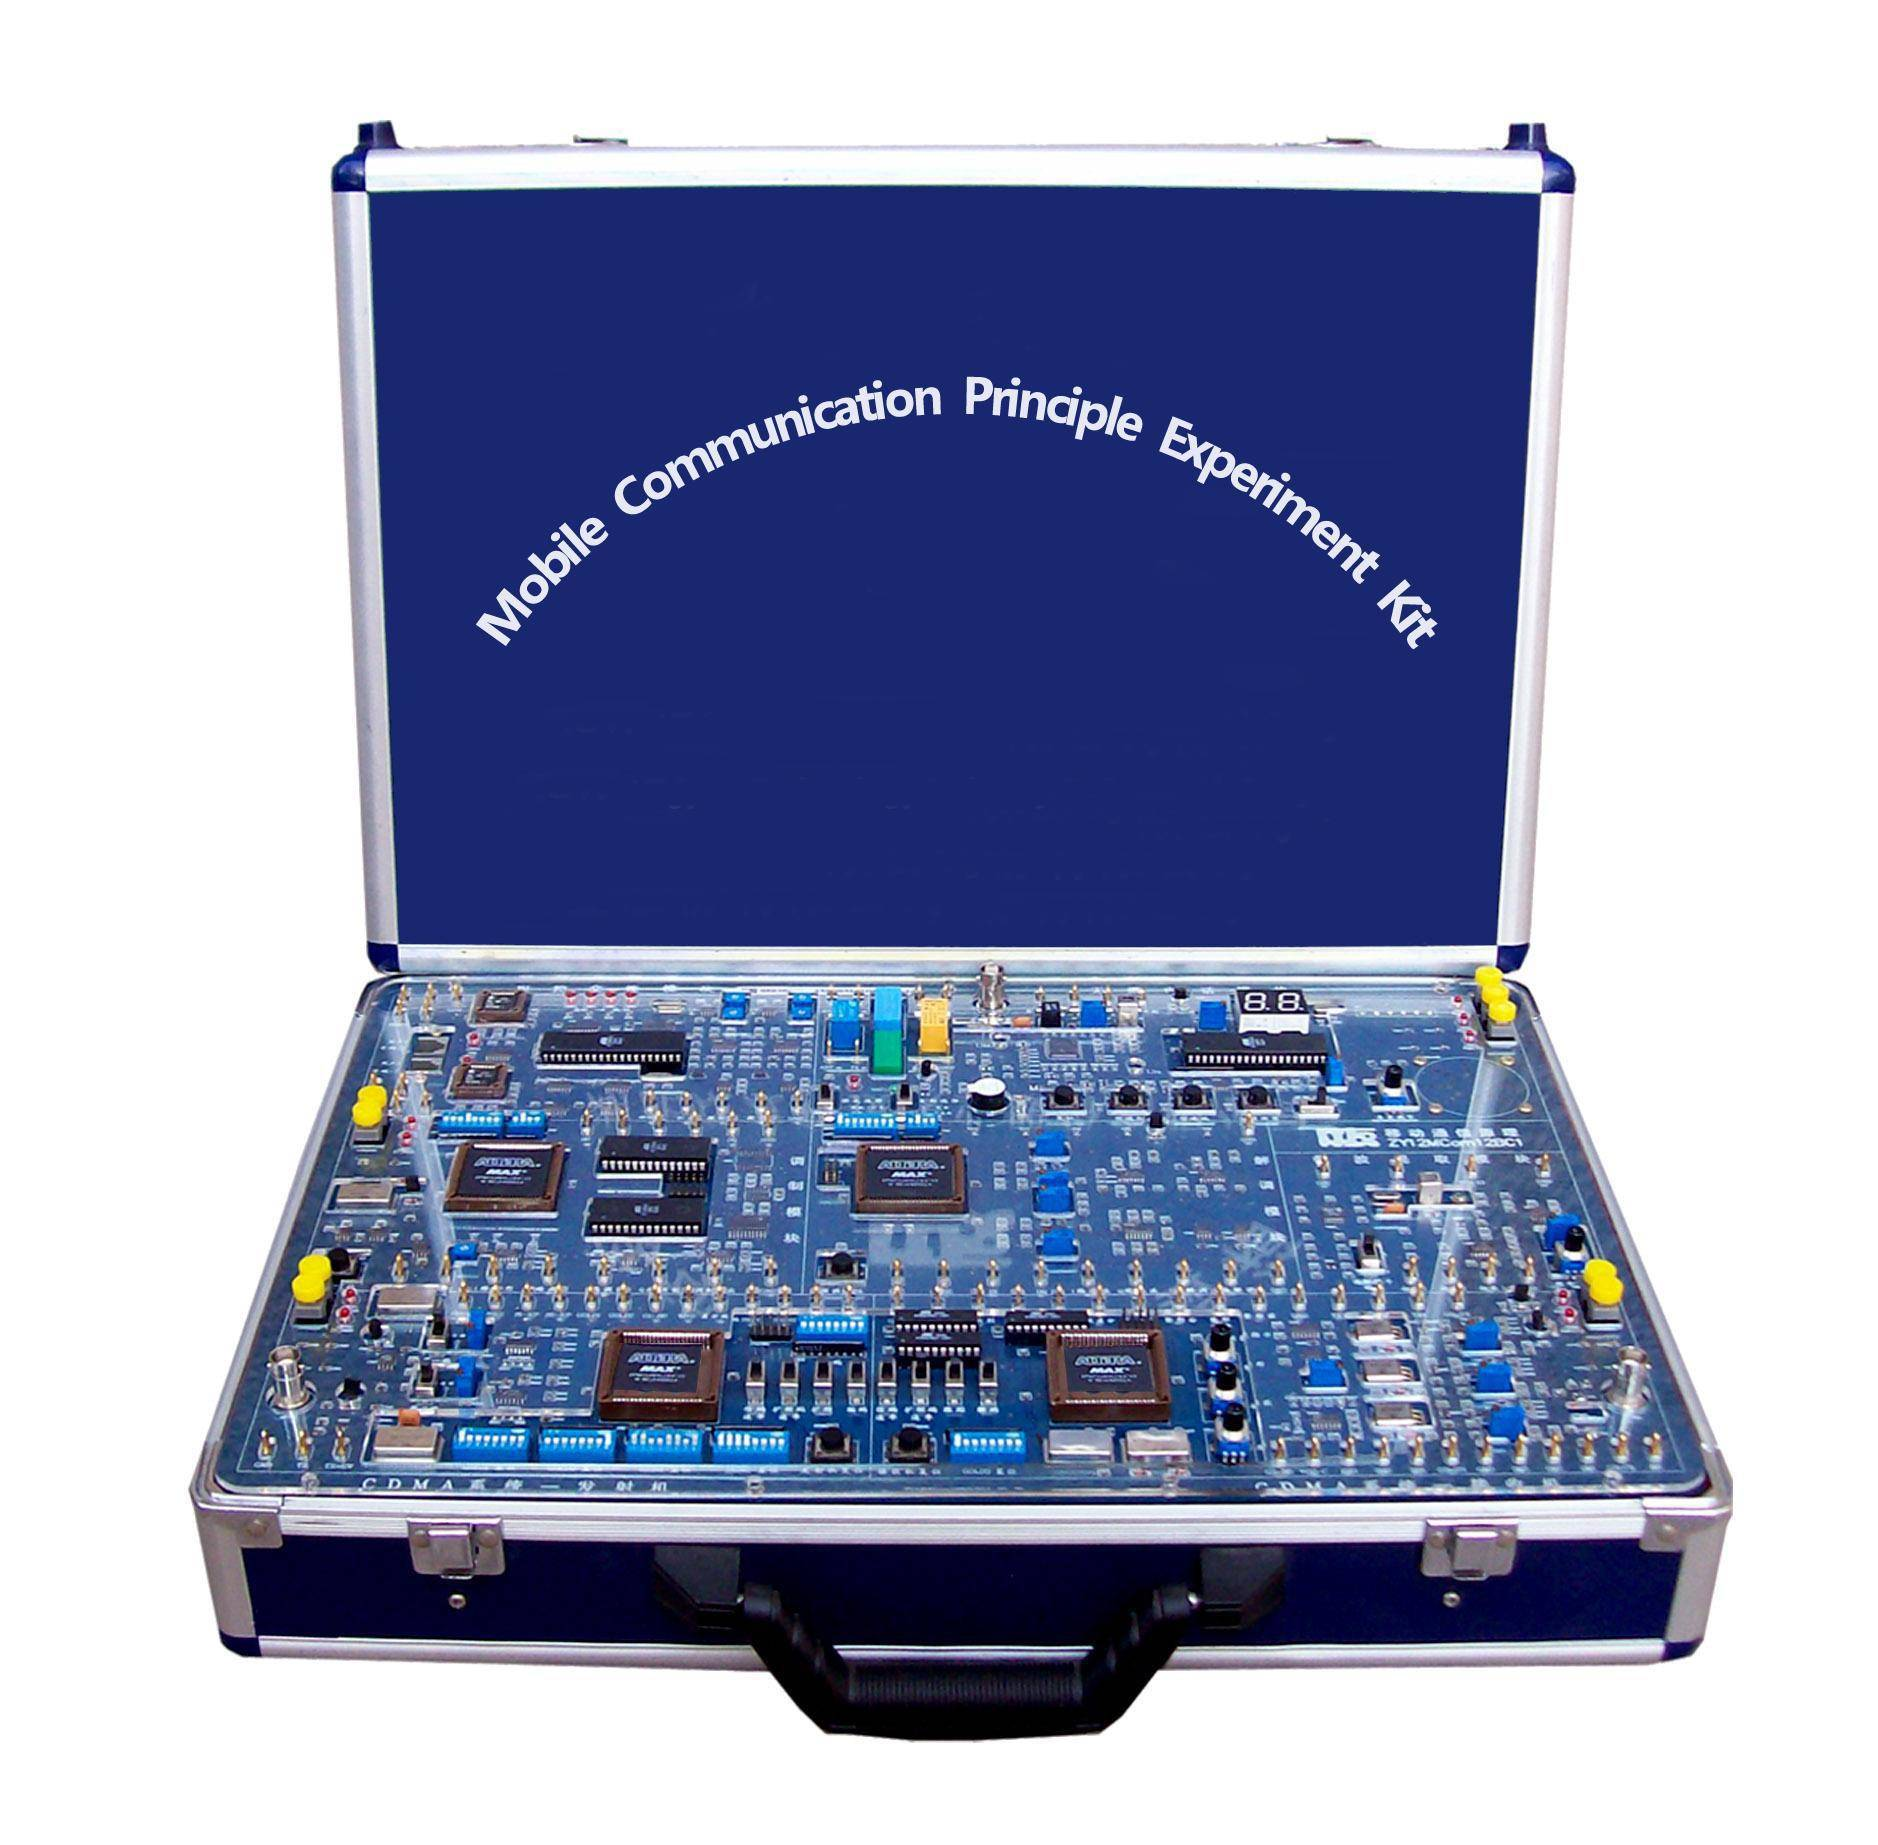 didactic educational training equipment/ ES0407C1 Mobile Communication Principle Experiment Kit